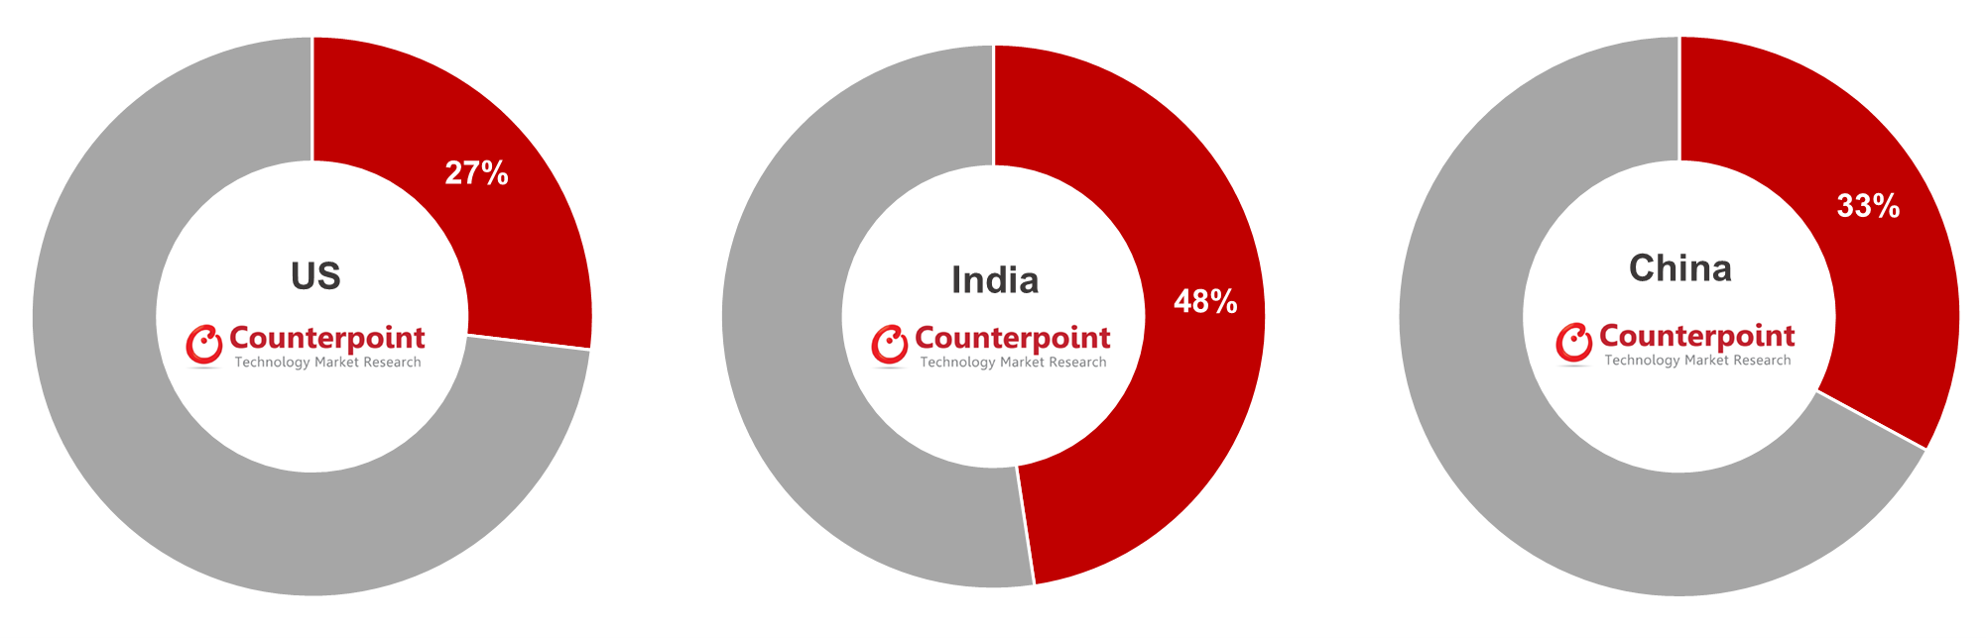 Counterpoint Research Share of Online Sales in US, India and China Smartphone Markets, H2 2020